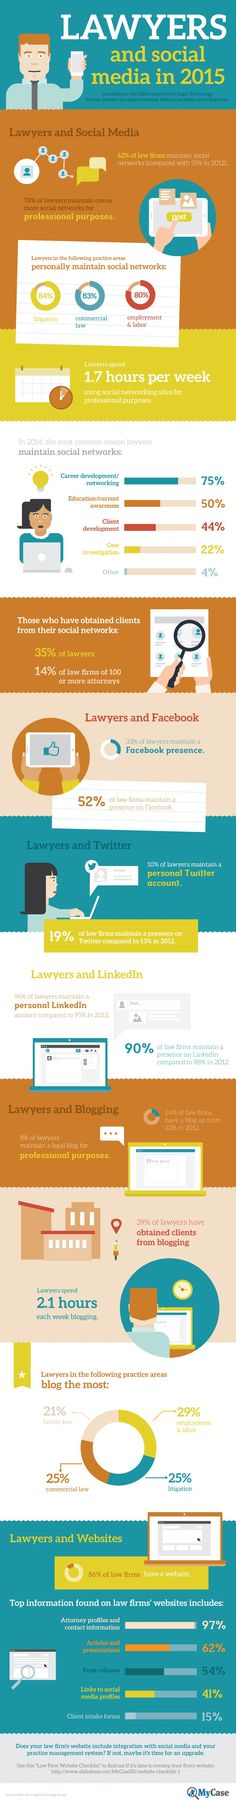 How are Lawyers Using Social Media? [INFOGRAPHIC] - Did you know that a recent survey found that 62 percent of law firms maintain a presence on social networks, up from 55 percent in 2012?  78 percent of lawyers themselves manage one or more social networks for professional purposes, with those in litigation, commercial law and employment/labor most prominent. | via @borntobesocial